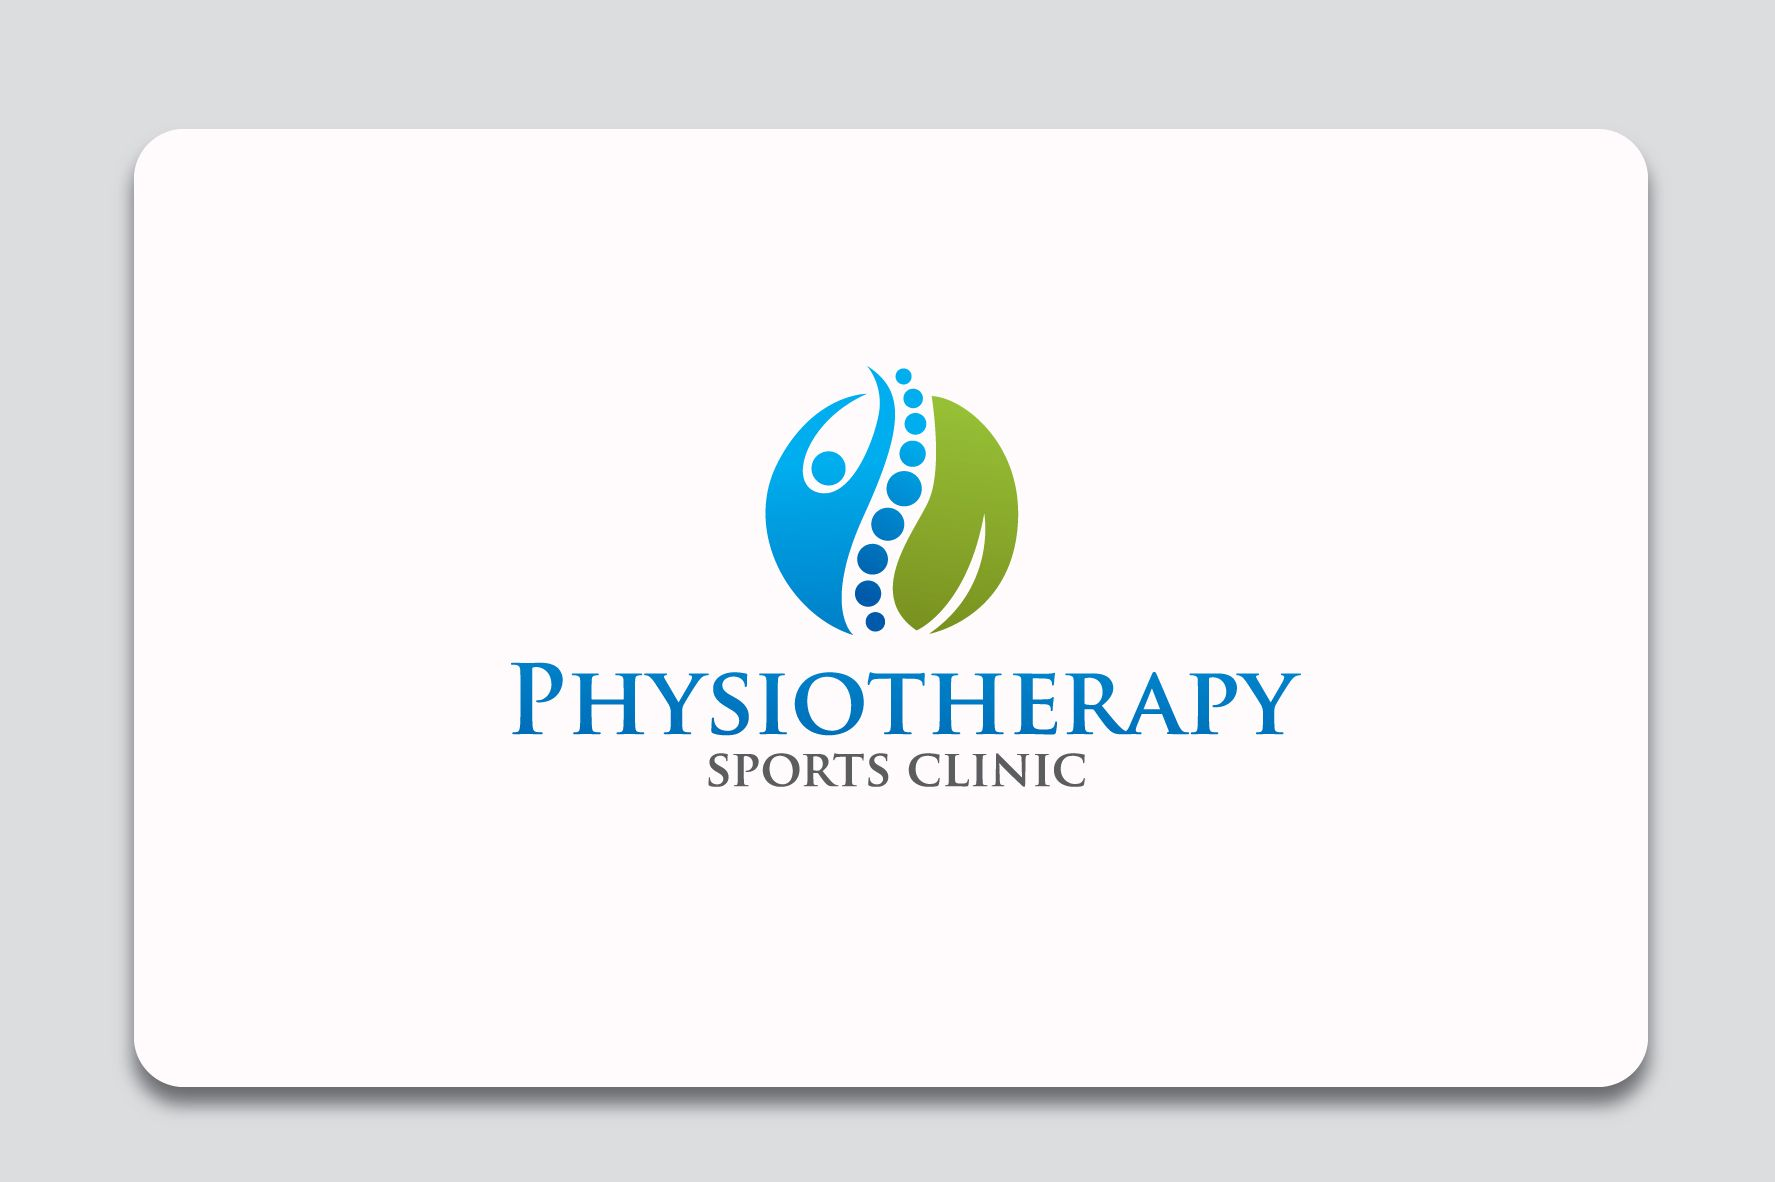 Physiotherapy Sports Clinic logo | Logo and Branding Designs ... for Corporate Logo Design Examples  183qdu